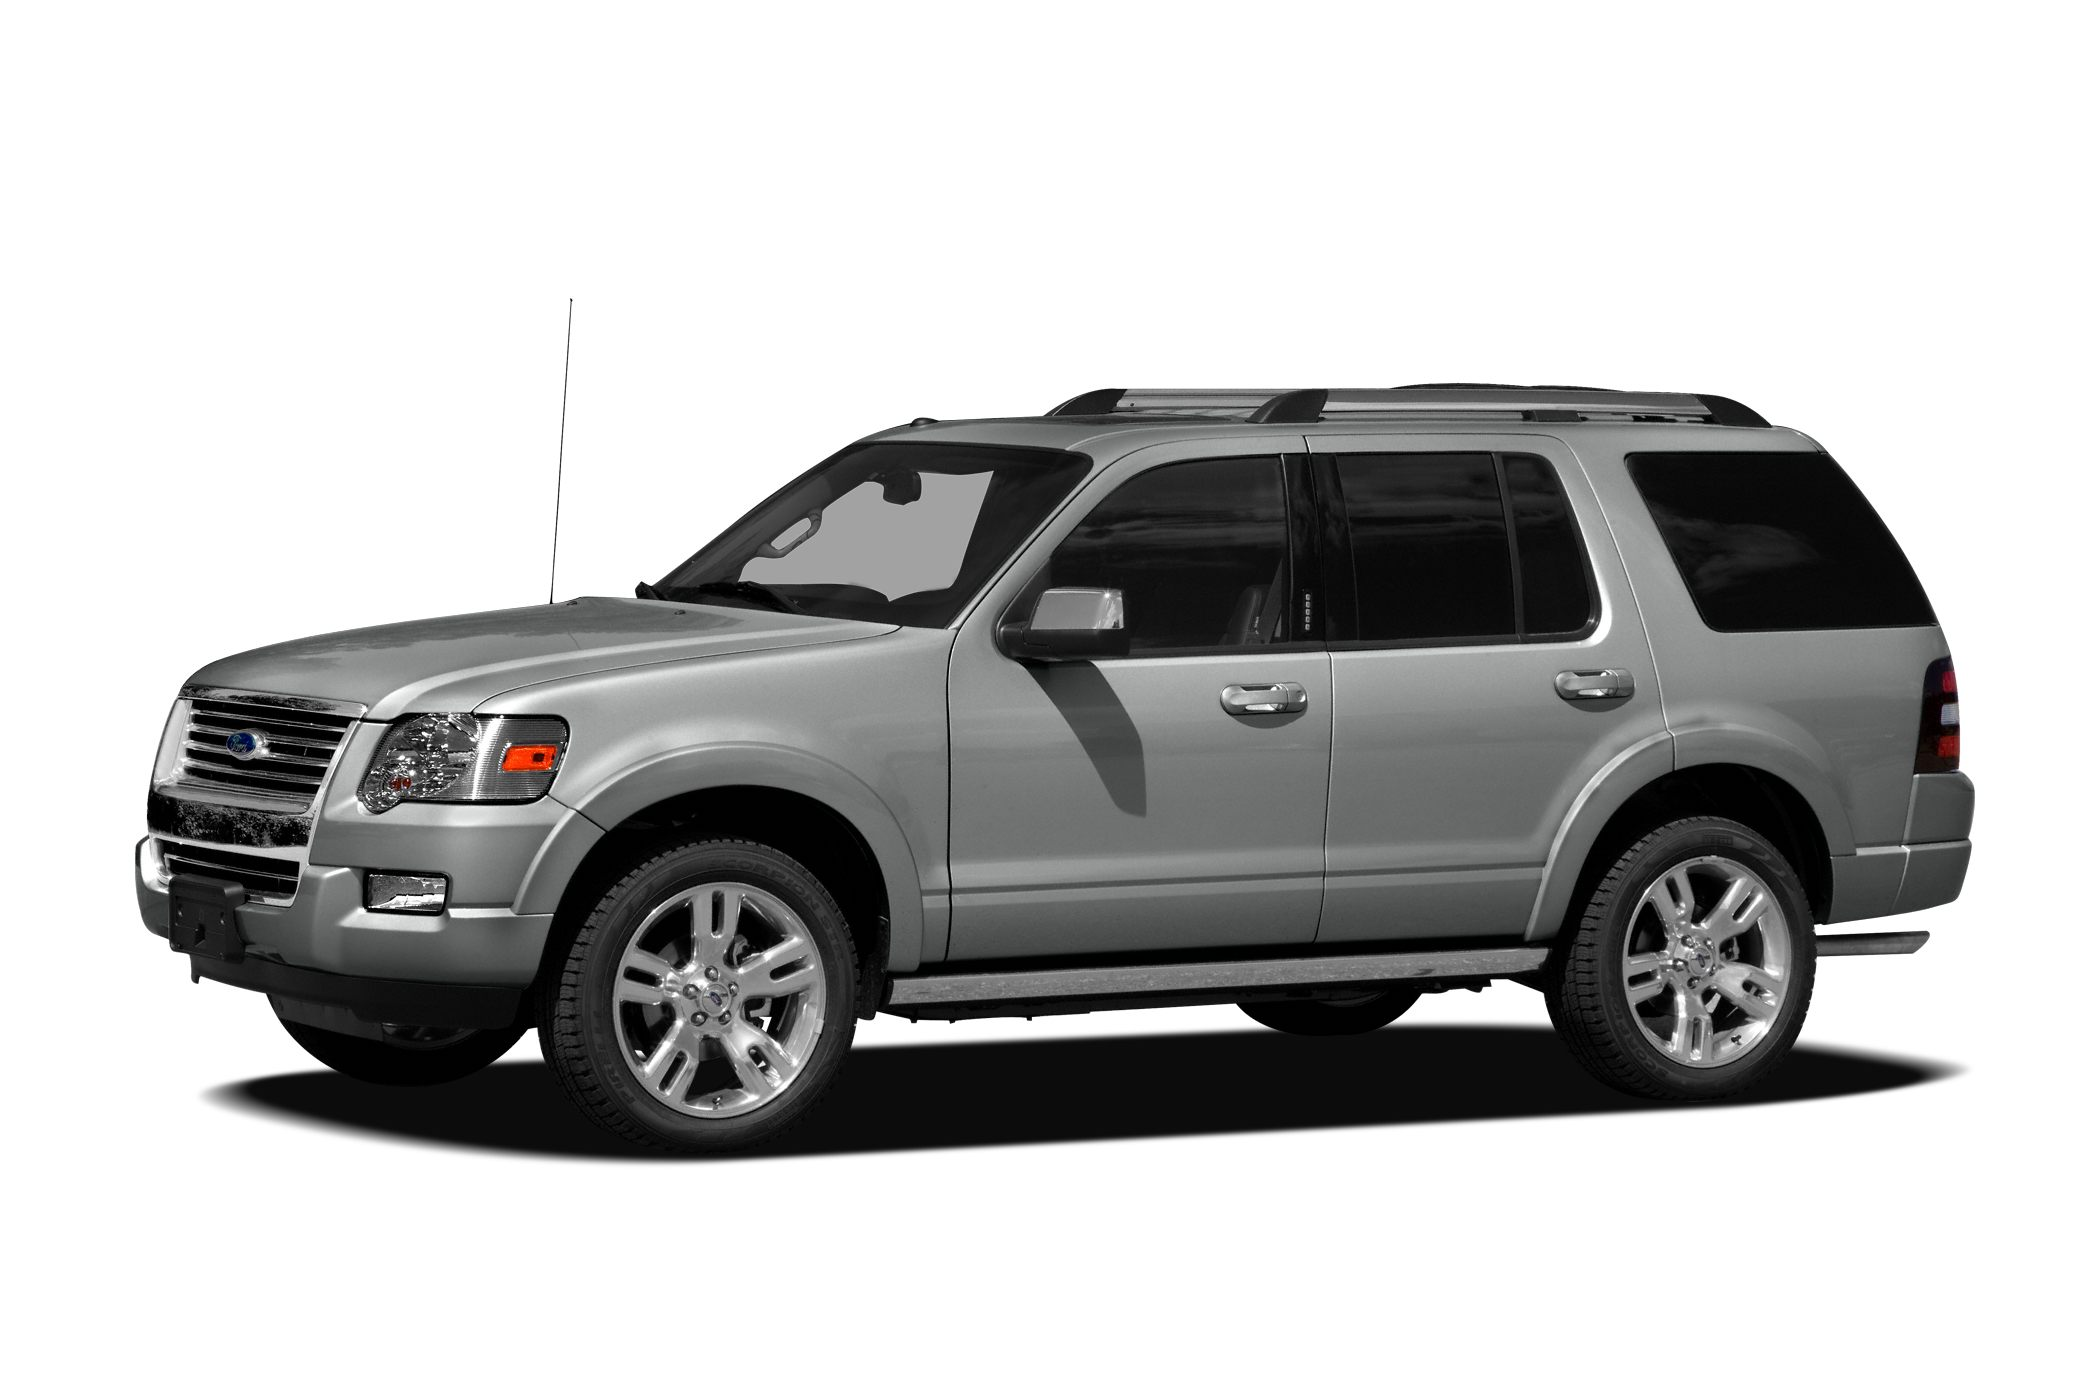 2010 Ford Explorer Eddie Bauer SUV for sale in Charlottesville for $23,995 with 23,379 miles